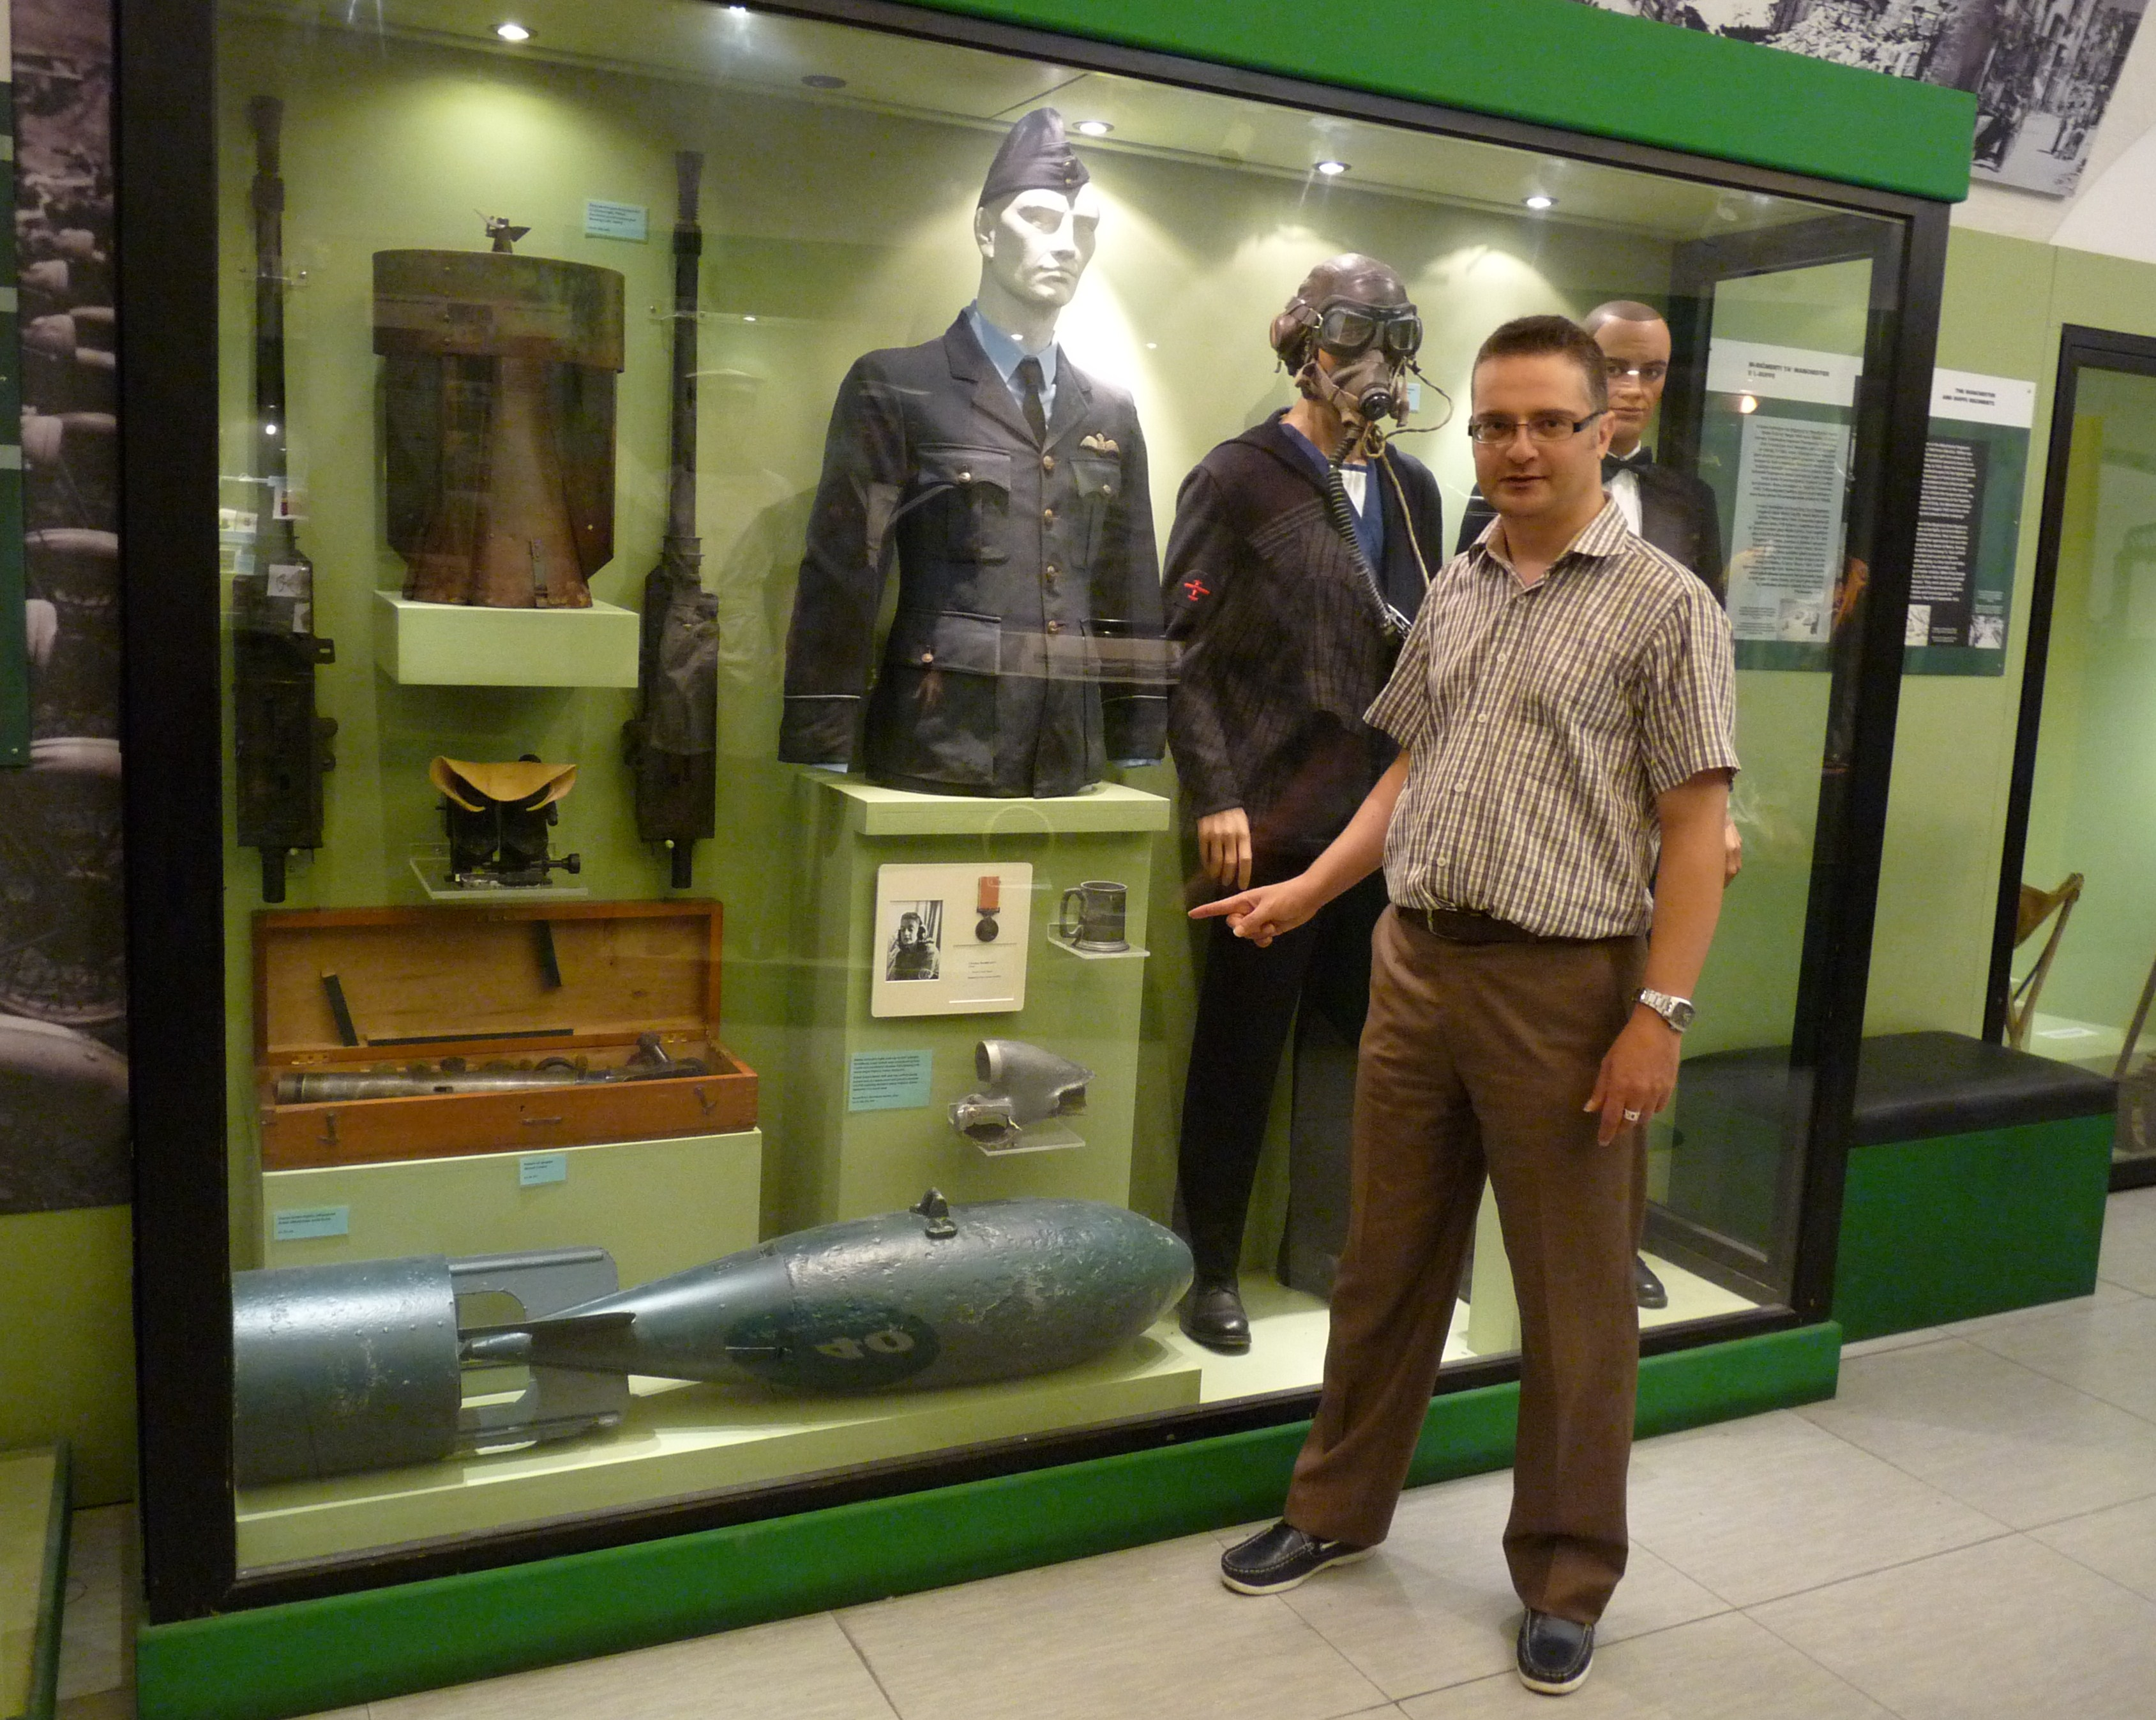 National War Museum Curator Charles Debono near Warburton-Ratcliffe exhibits - 1.JPG